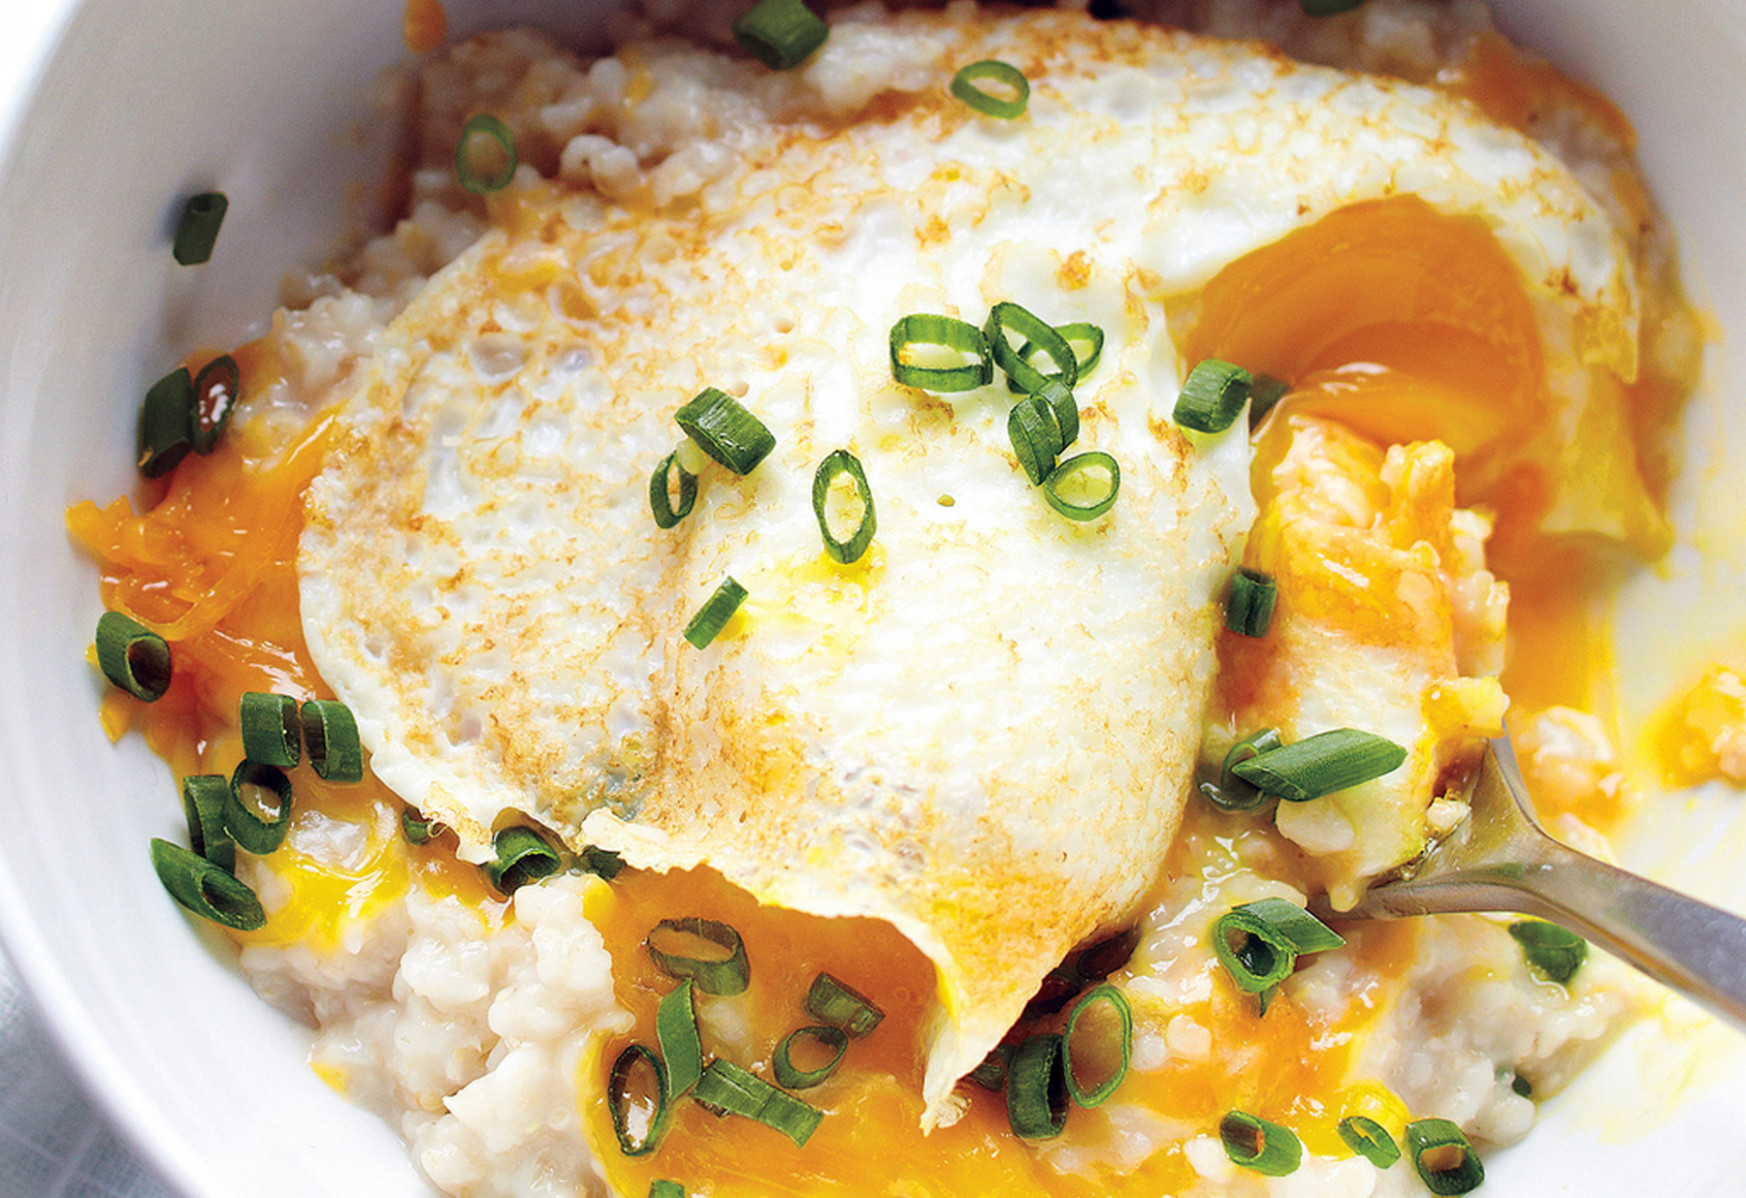 Healthy Breakfasts: 11 Fast Recipes for Busy Mornings - recipes that are healthy and easy to make